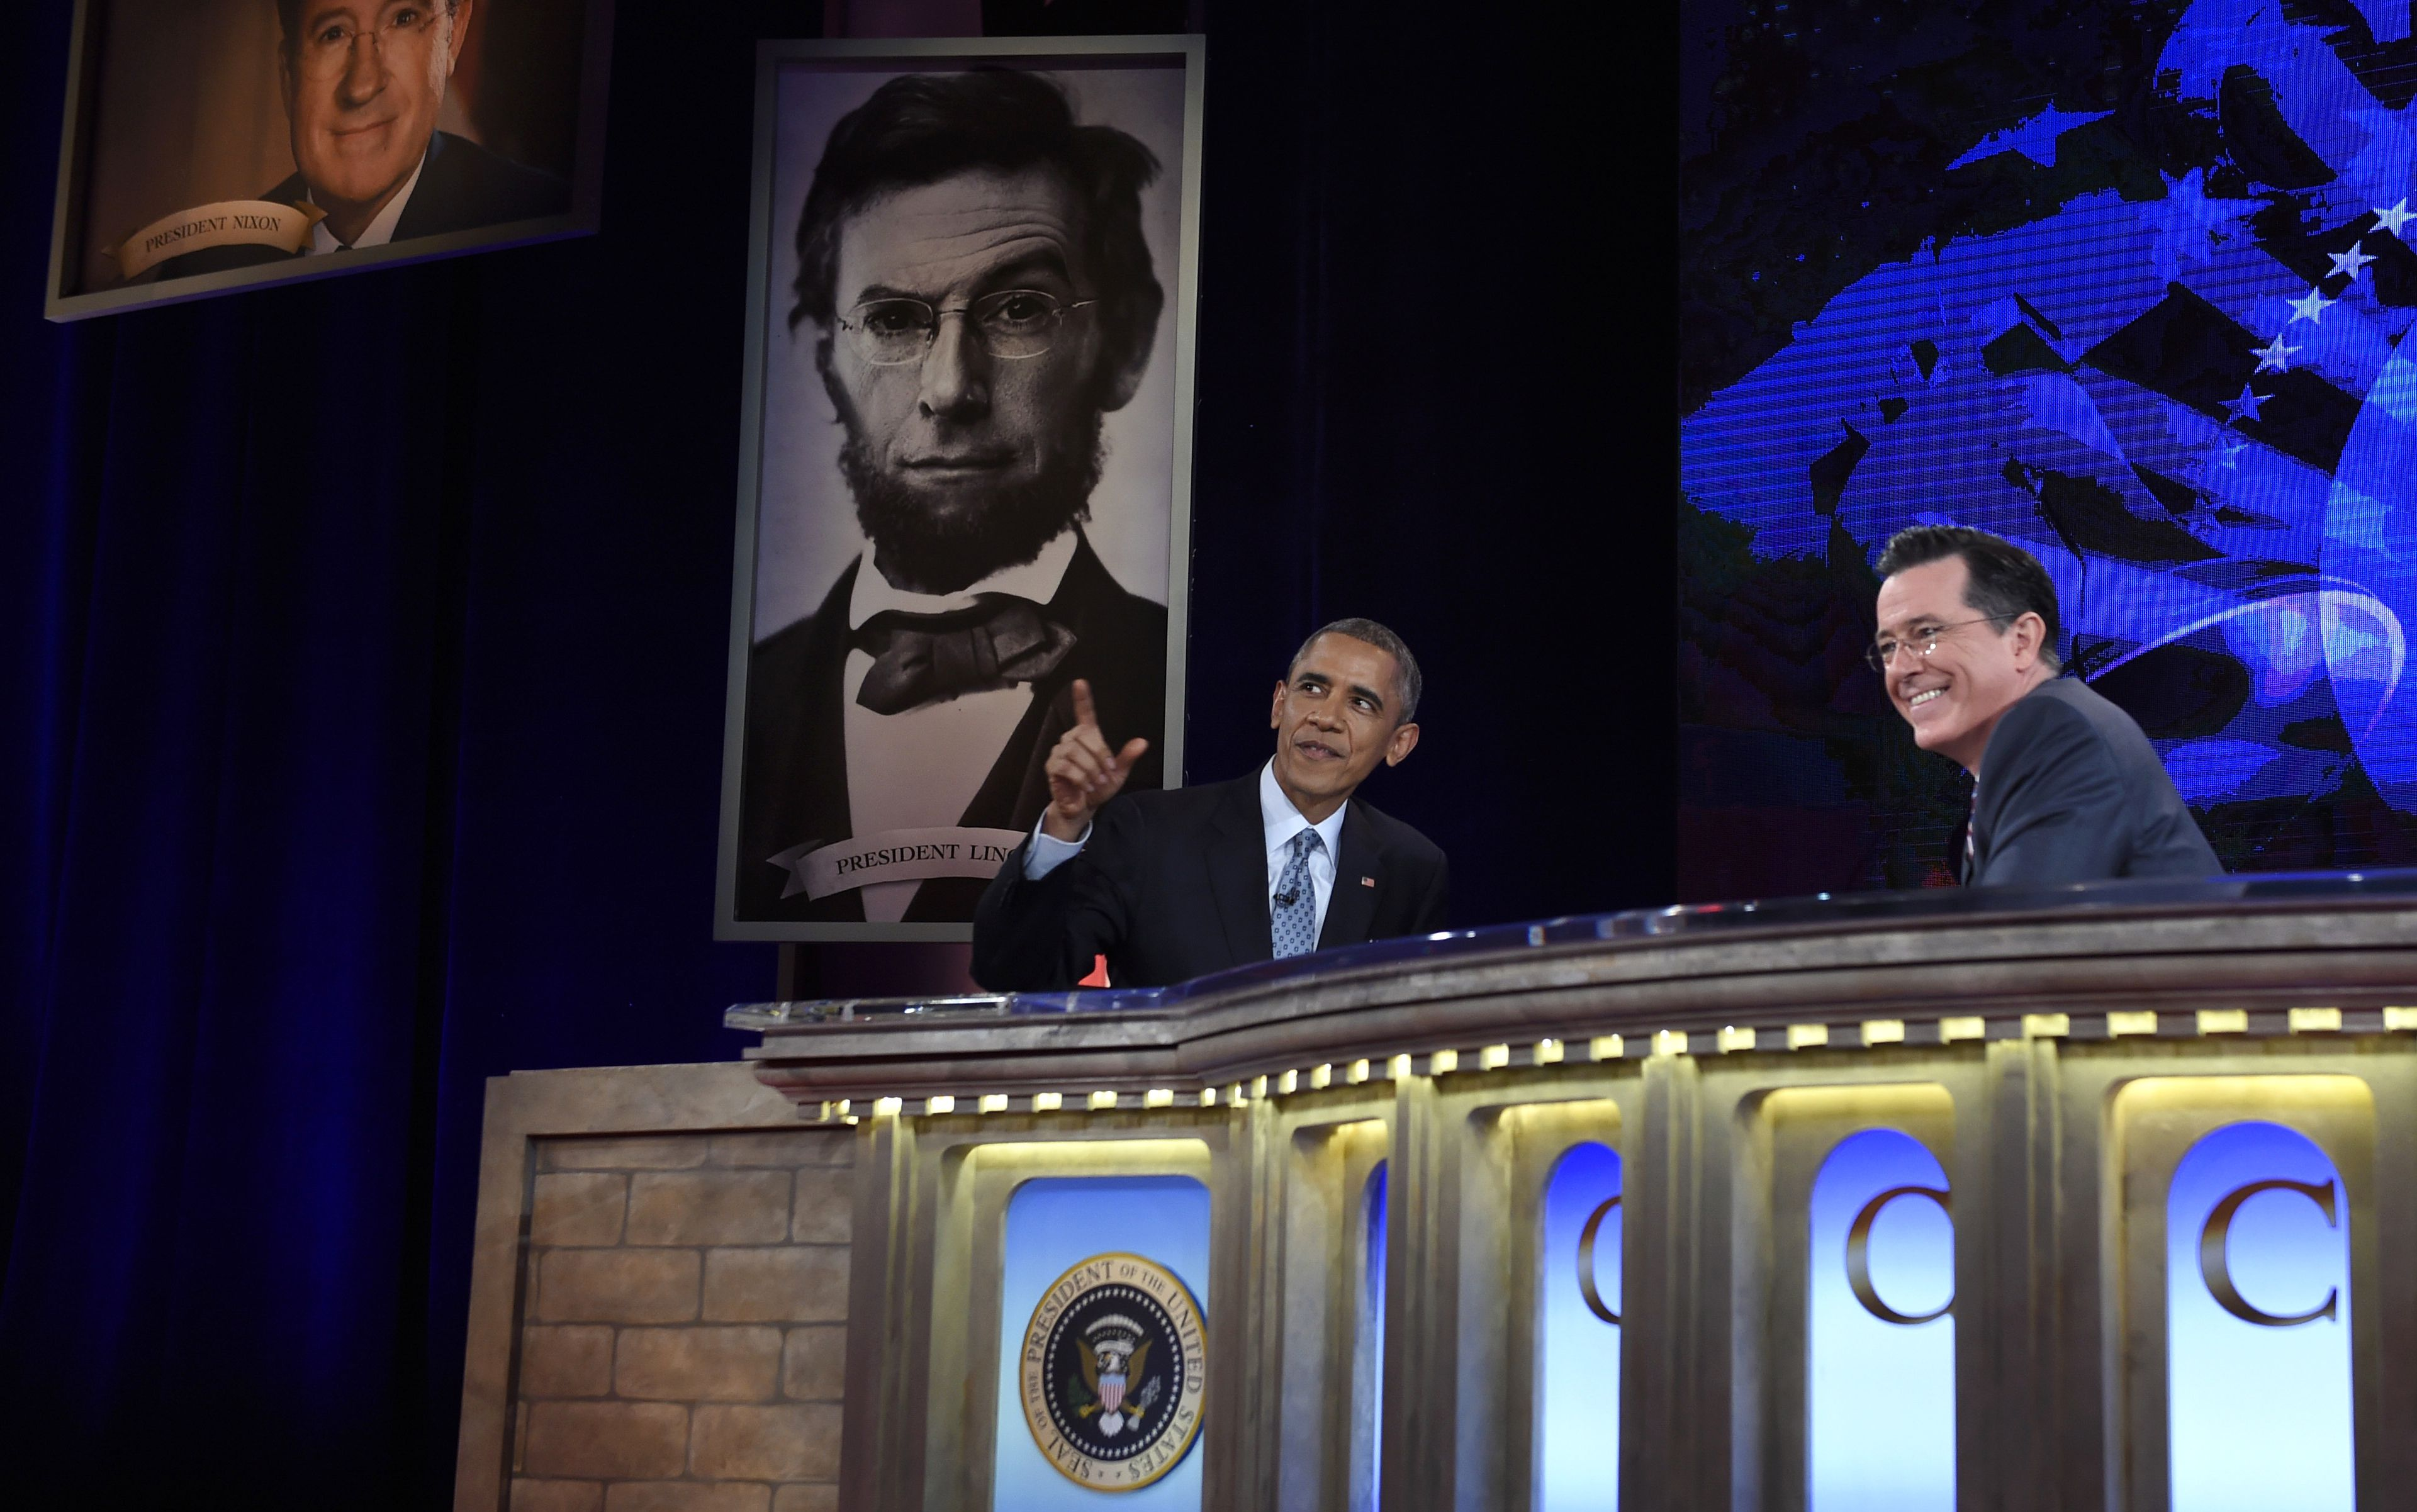 President Barack Obama talks with Stephen Colbert of The Colbert Report during a taping of The Colbert Report program in Lisner Auditorium at George Washington University in Washington, Monday, Dec. 8, 2014. (AP Photo/Susan Walsh)